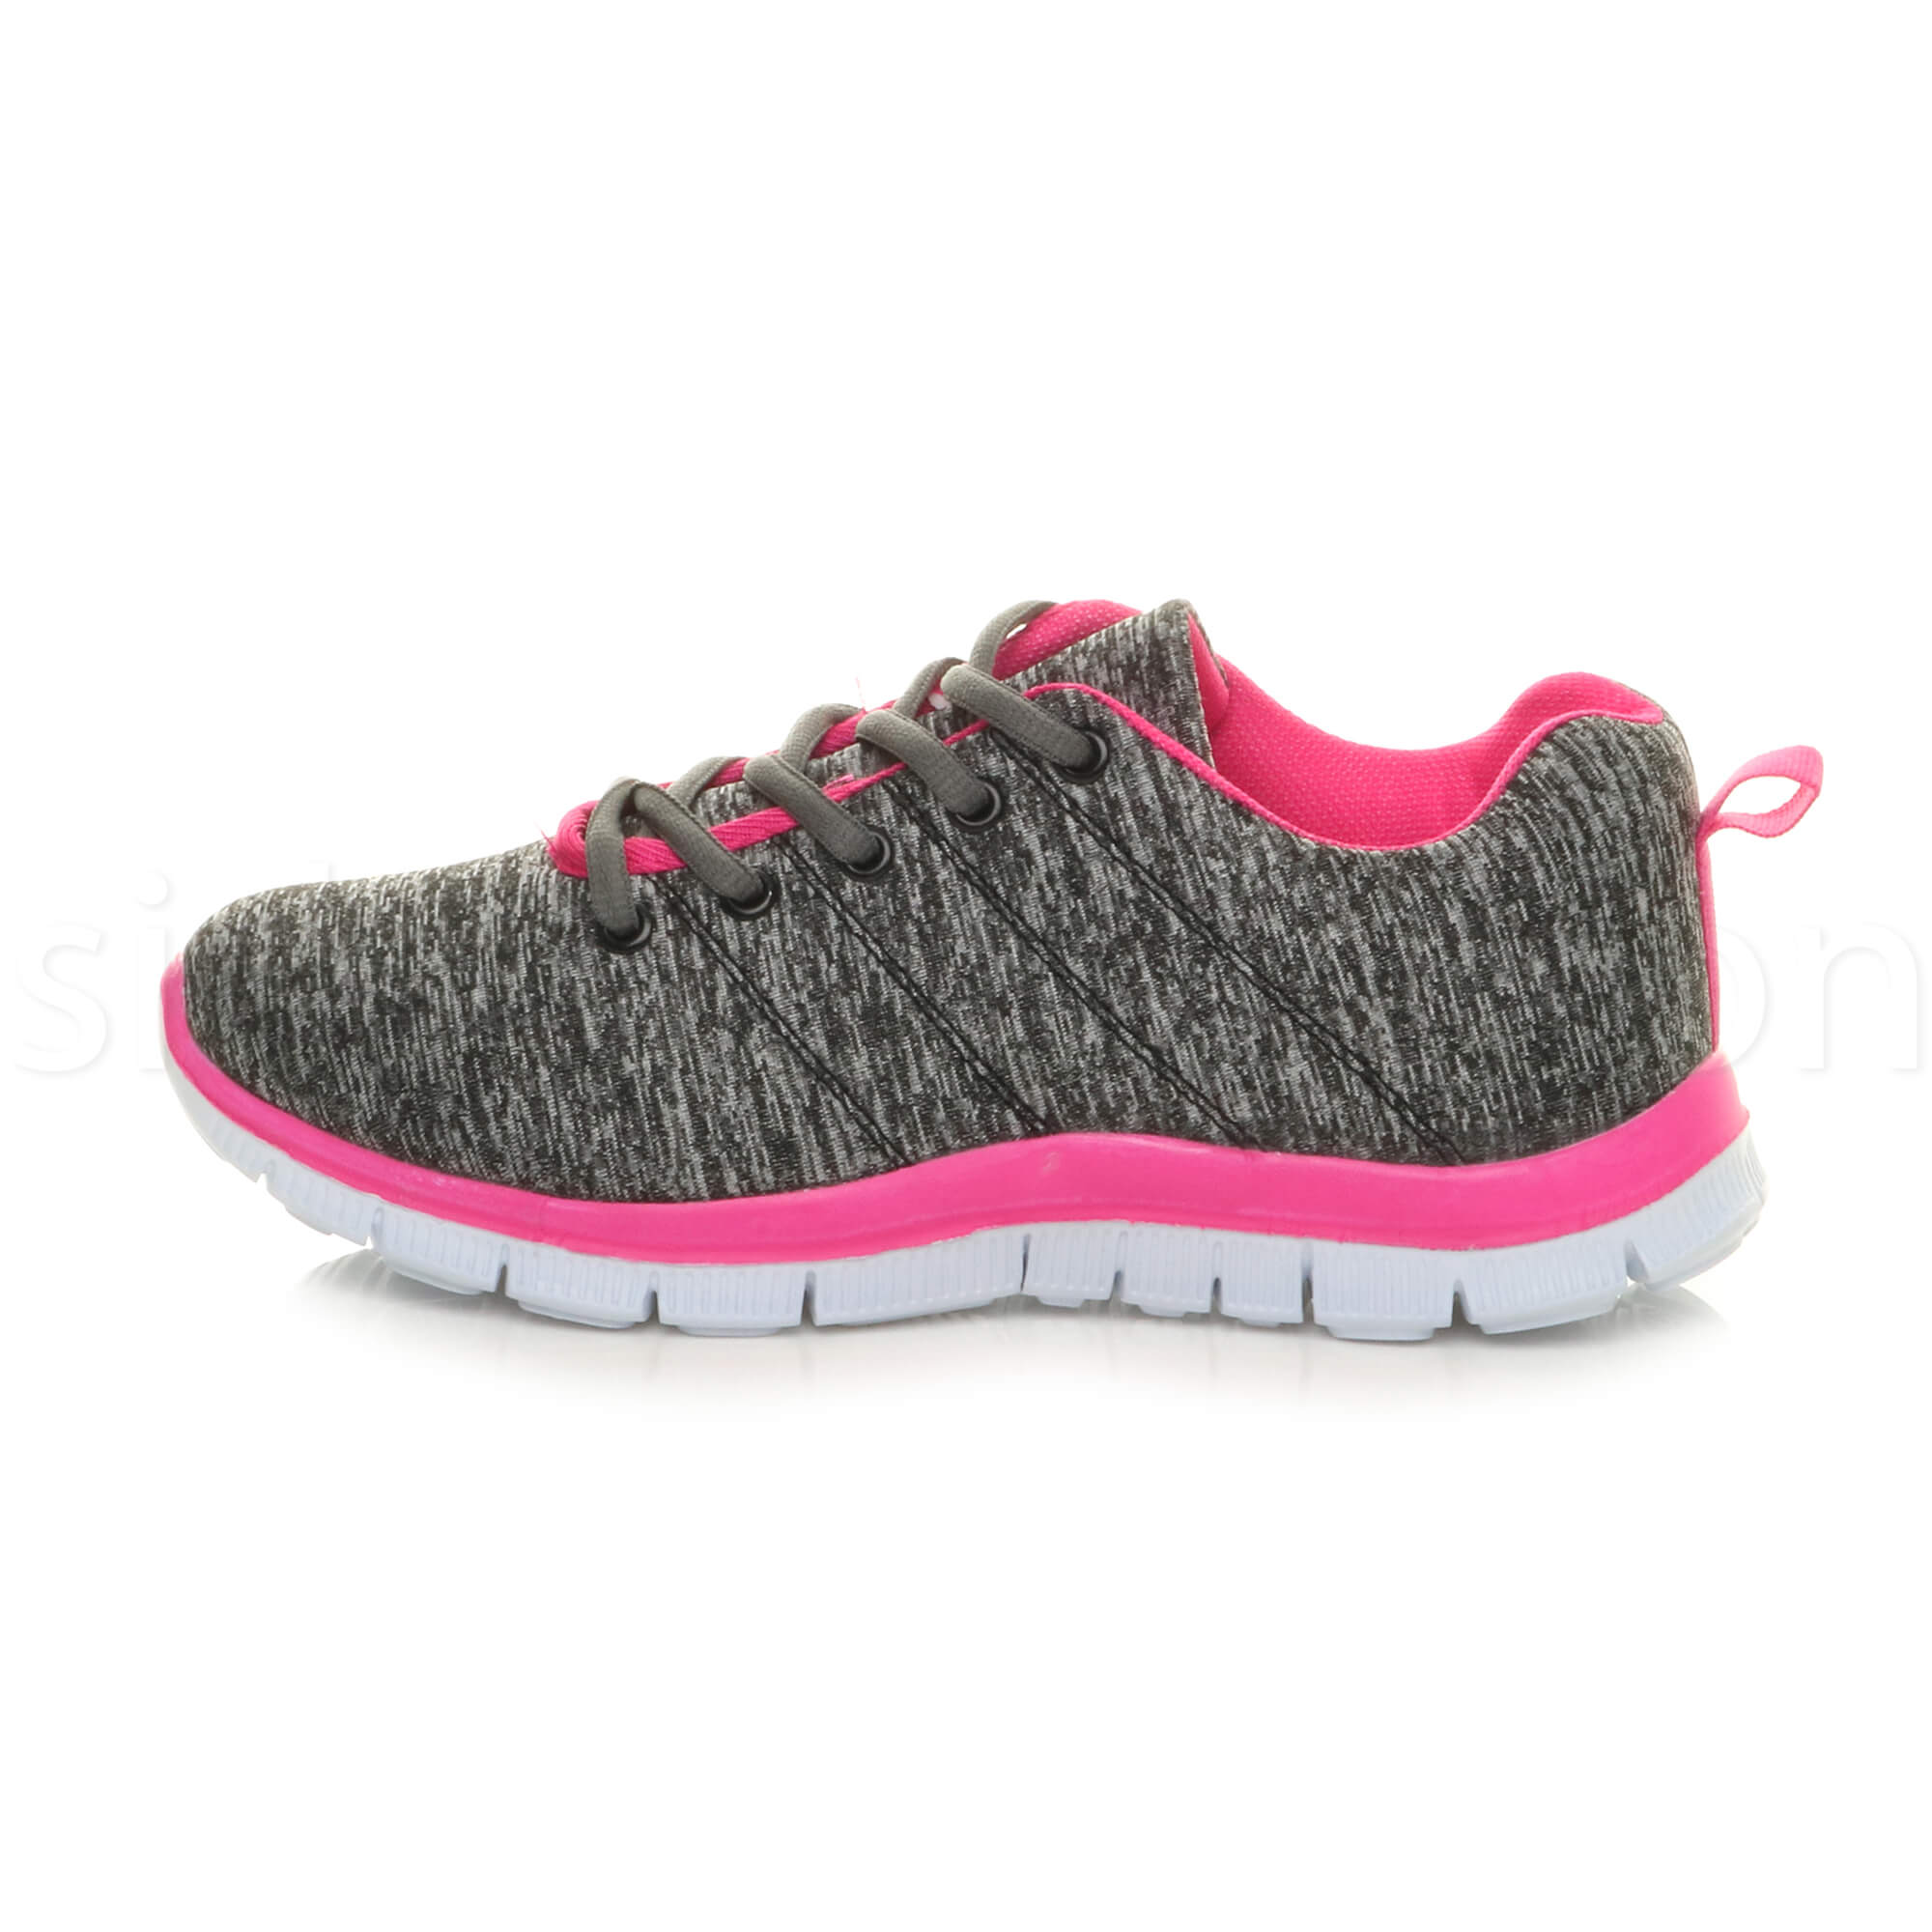 Womens-ladies-comfort-memory-foam-lace-up-trainers-activewear-sneakers-gym-shoes thumbnail 57